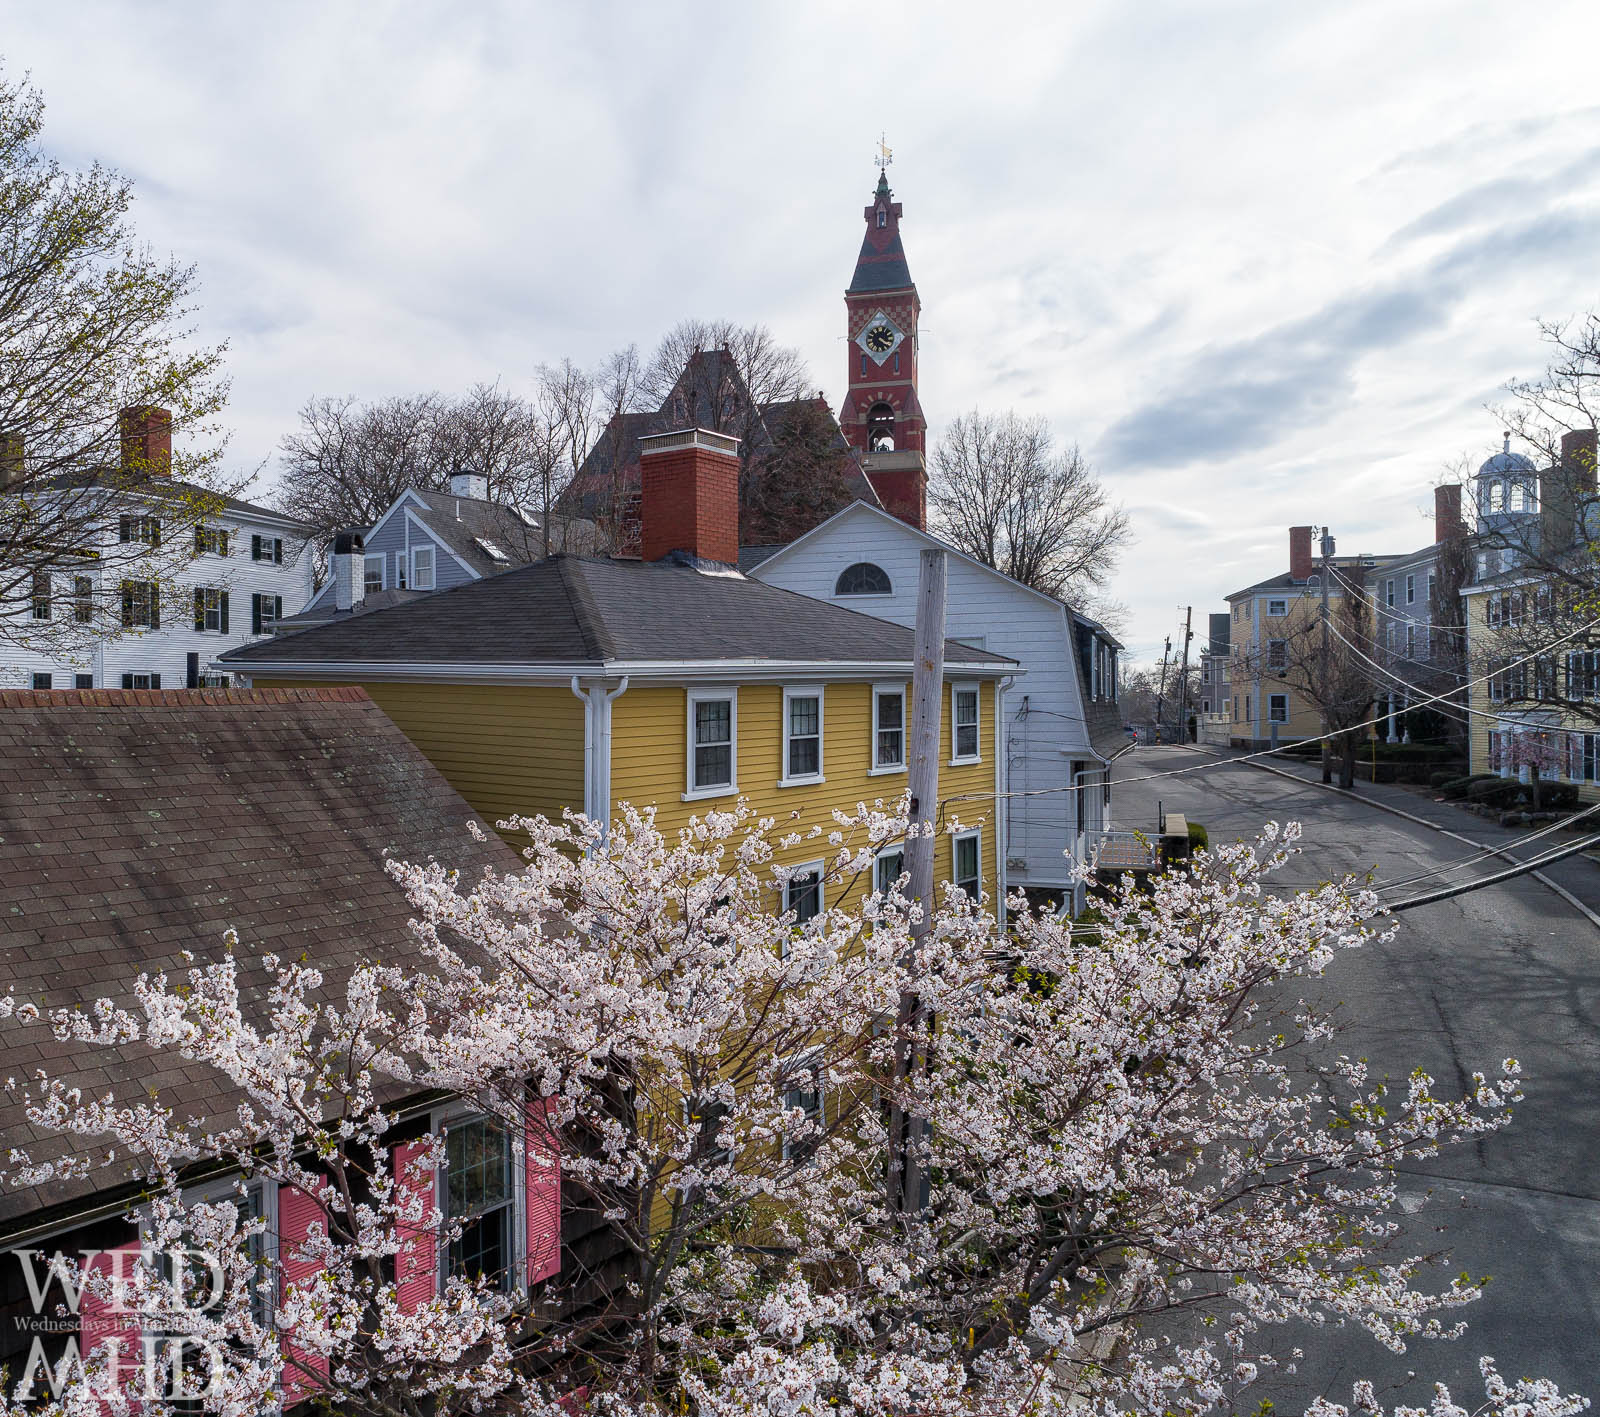 A sure sign of Spring in Marblehead is the appearance of cherry blossoms on Washington Street seen in this aerial view with Abbot Hall in the distance